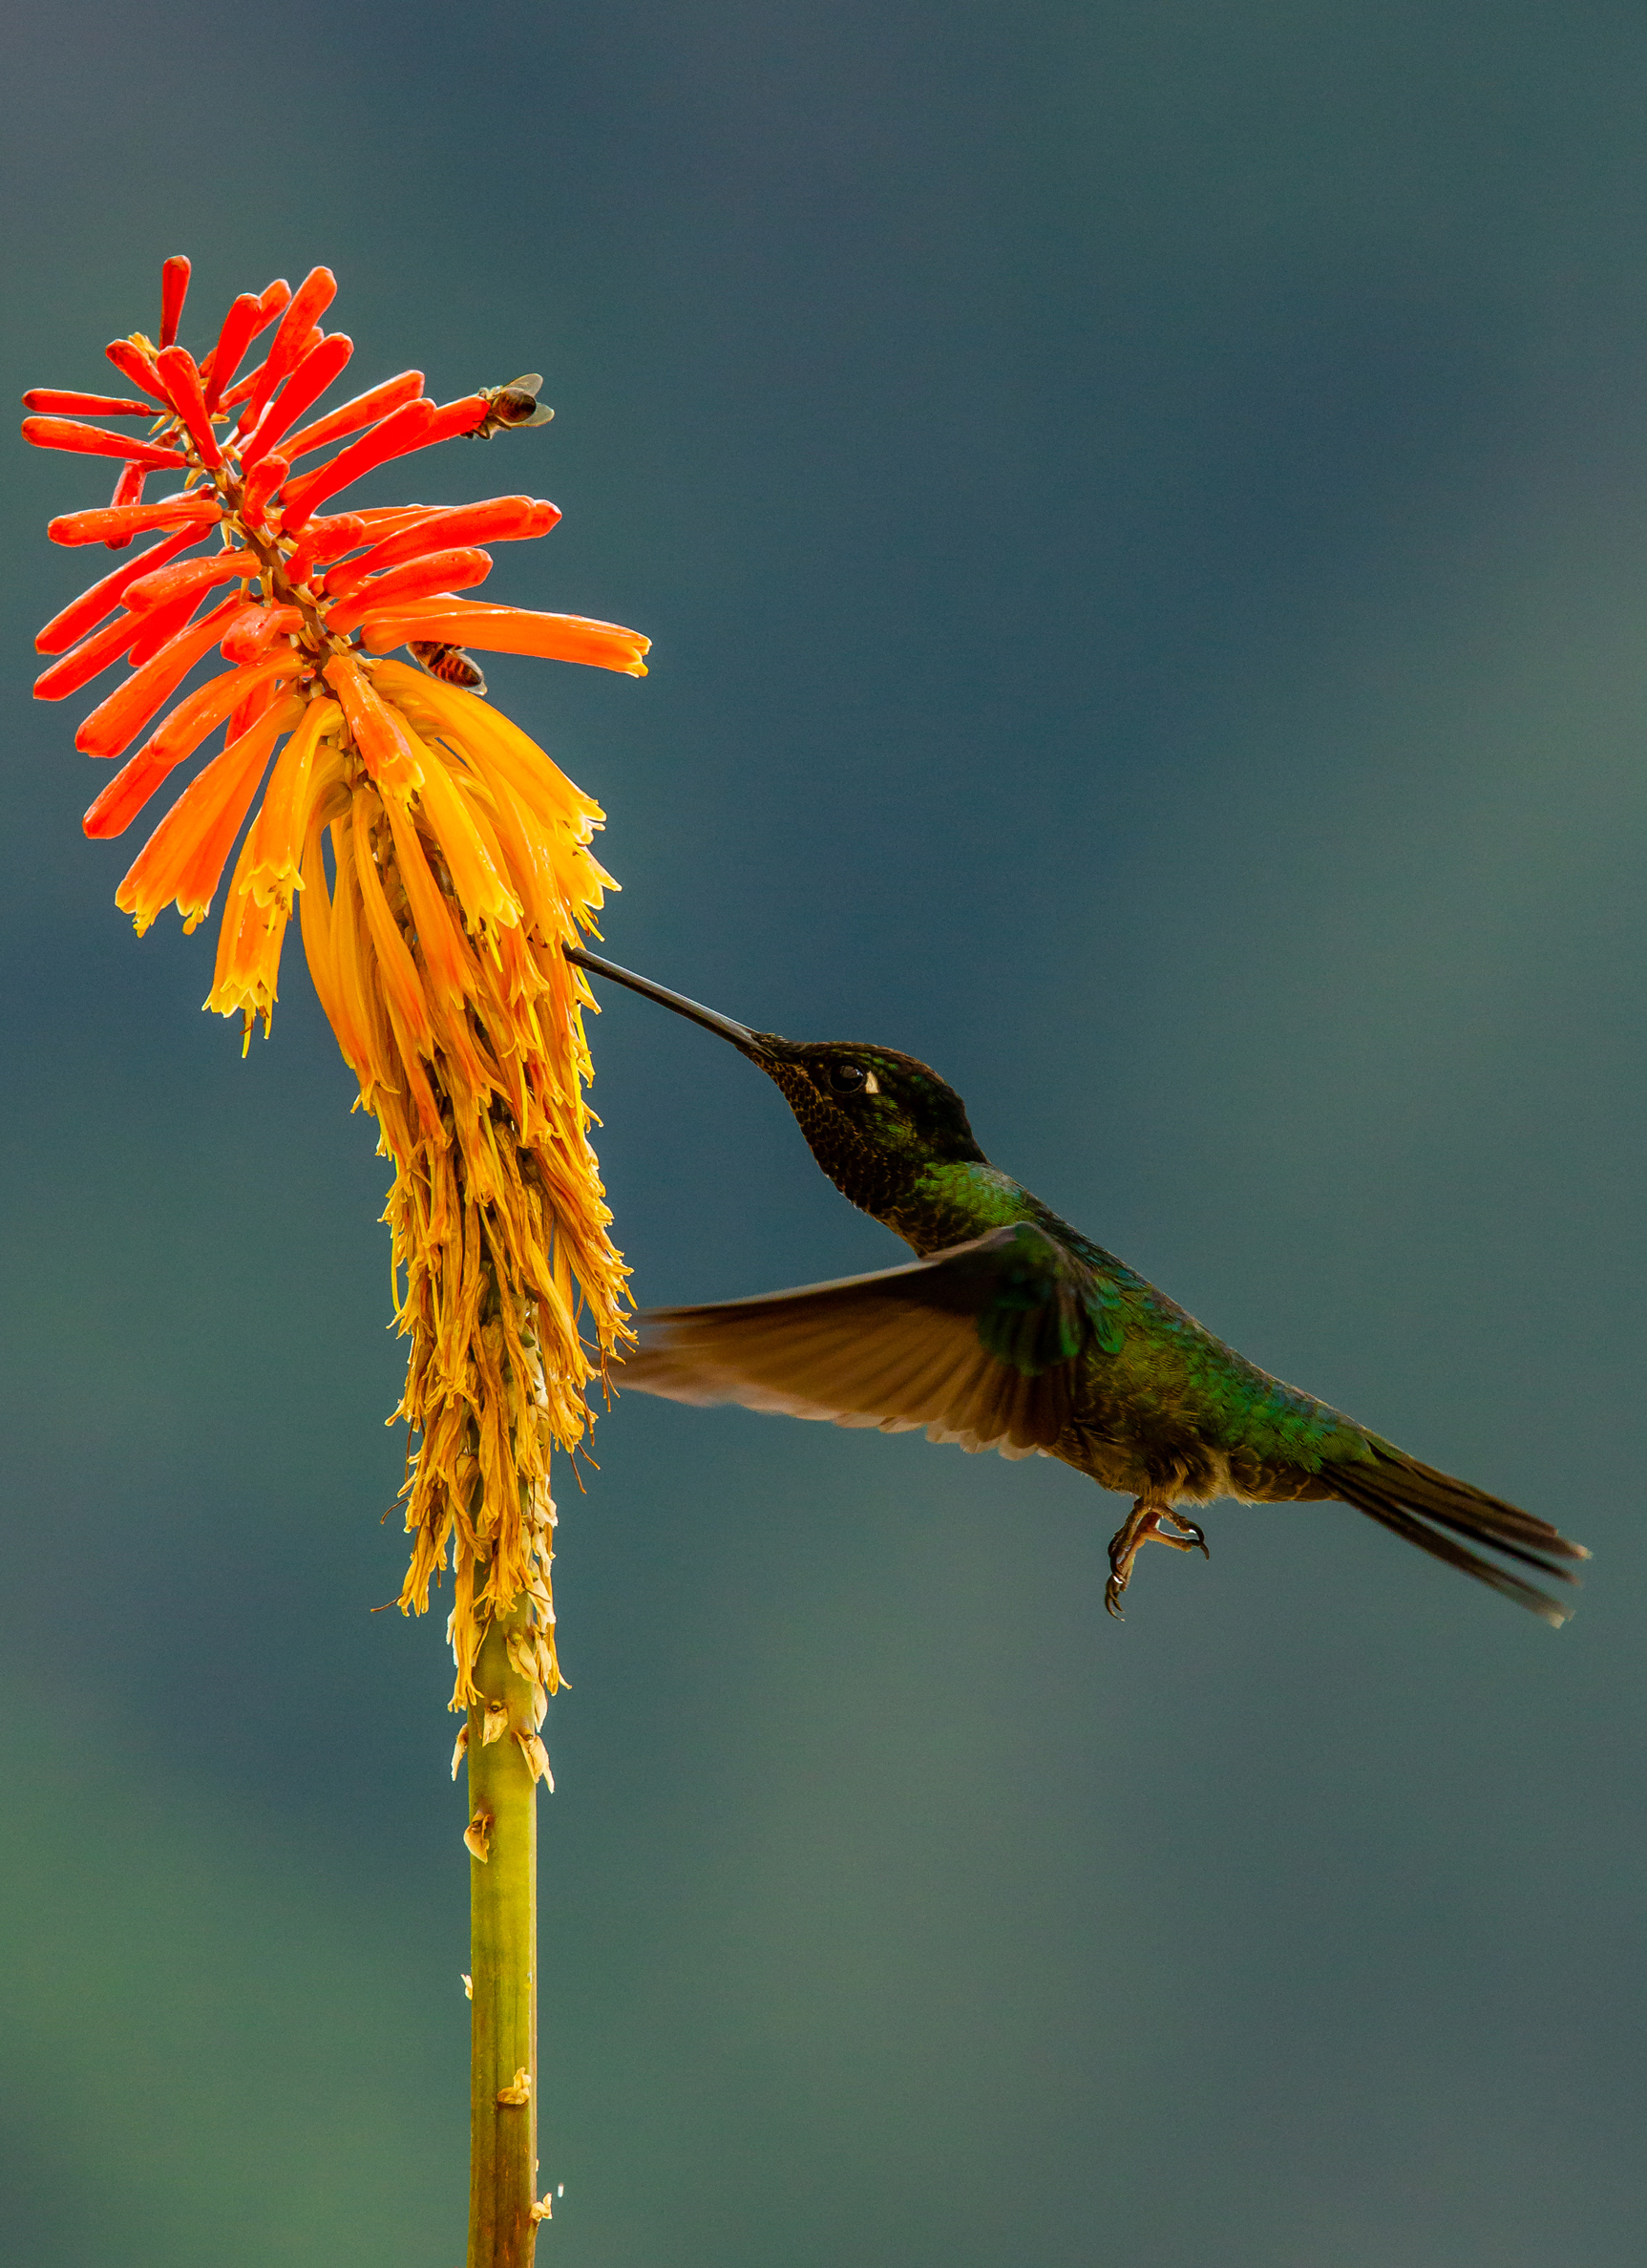 Hummingbird Feeding. Taken in San Gerardo de Dota, Costa Rica. Photo by Ben Blankenship. ©2019